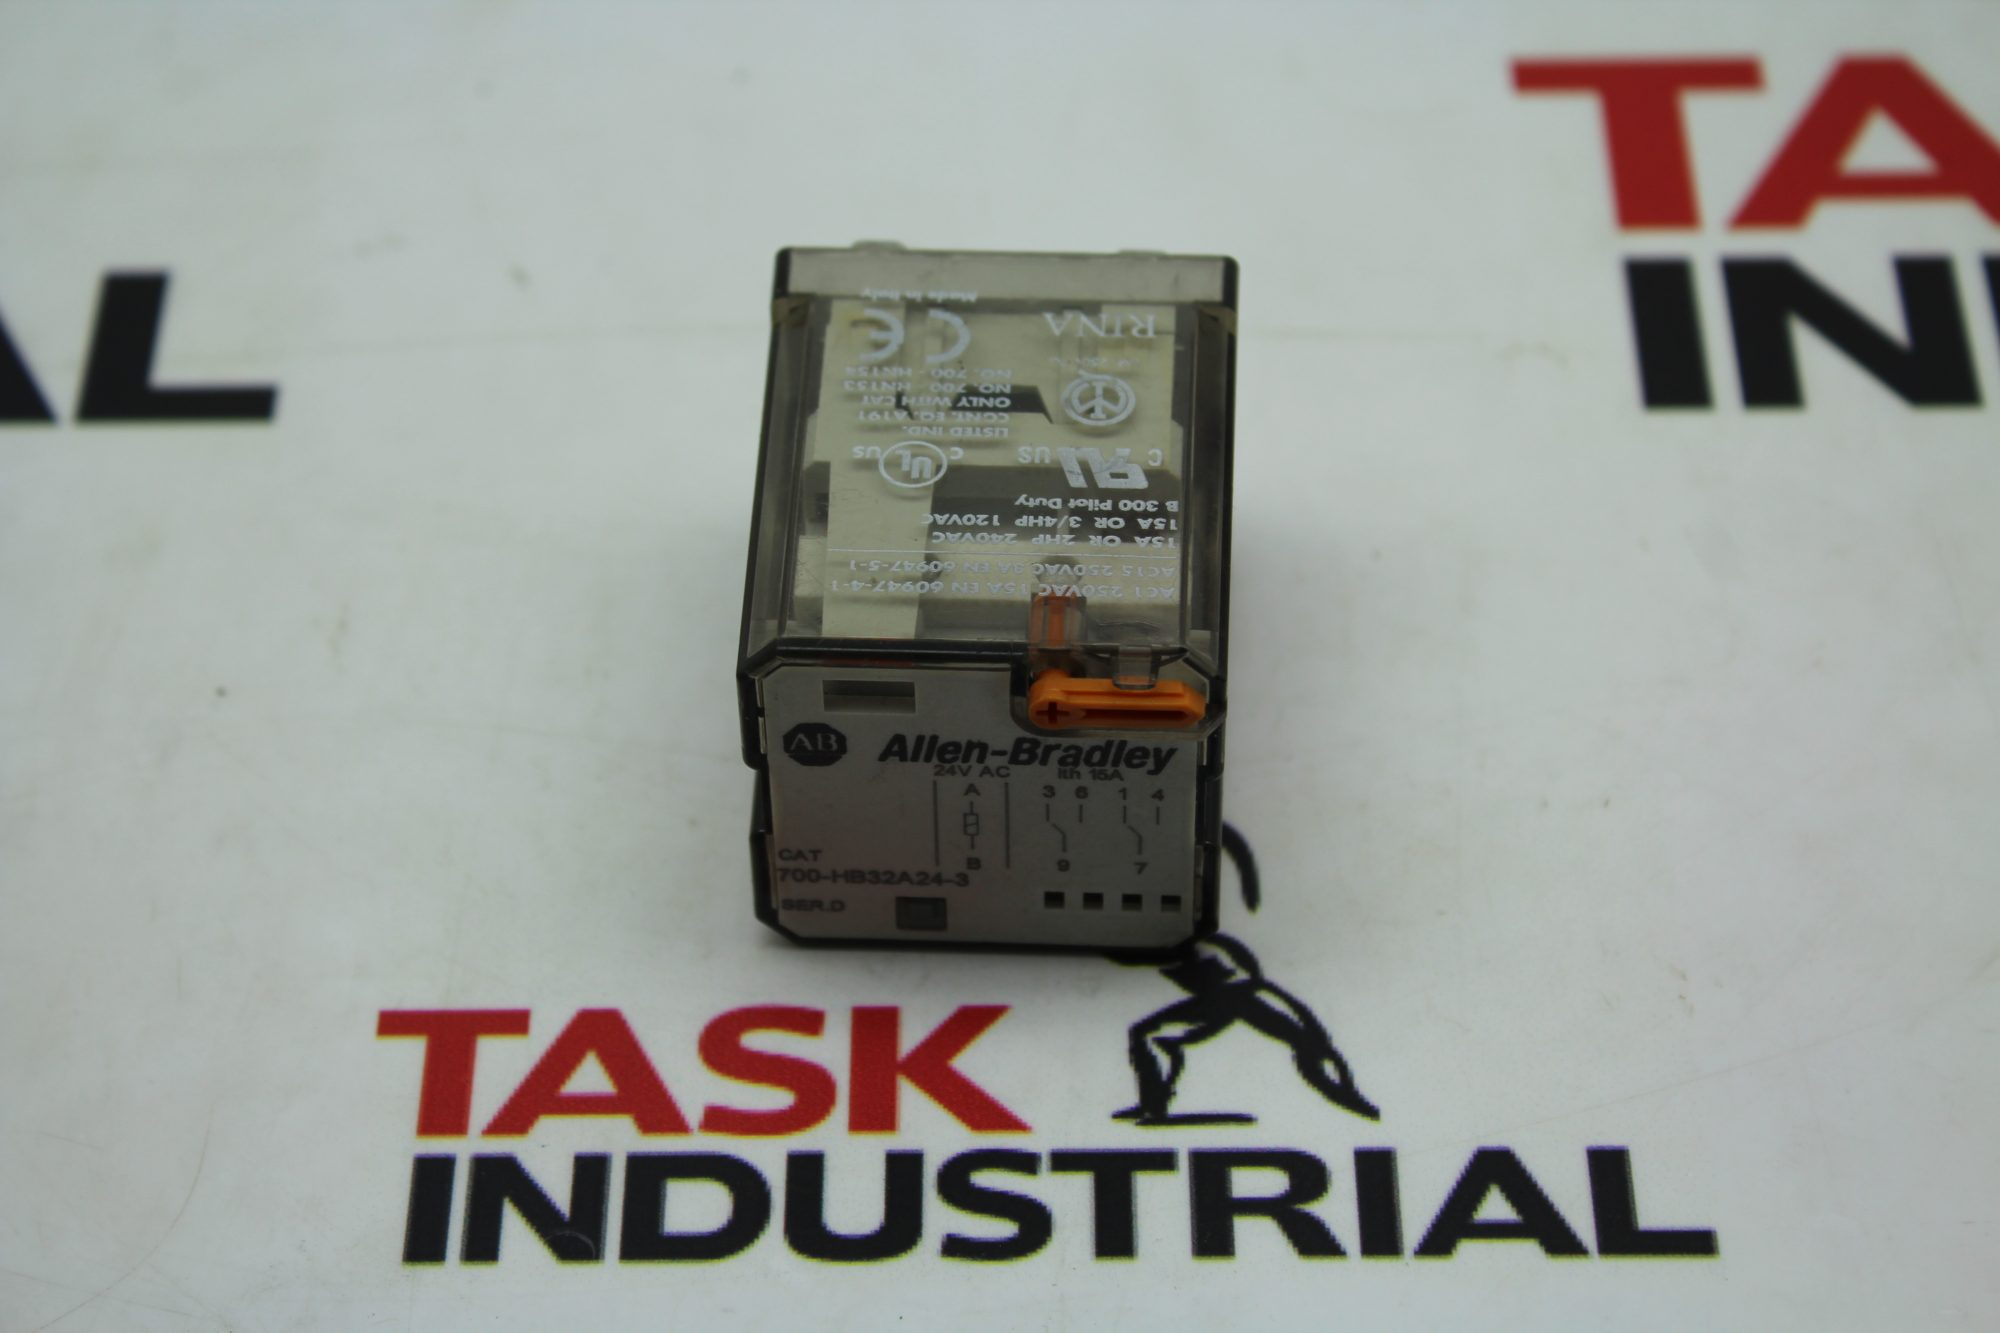 Allen-Bradley CAT No. 700-HB32A24-3 Series D Relay